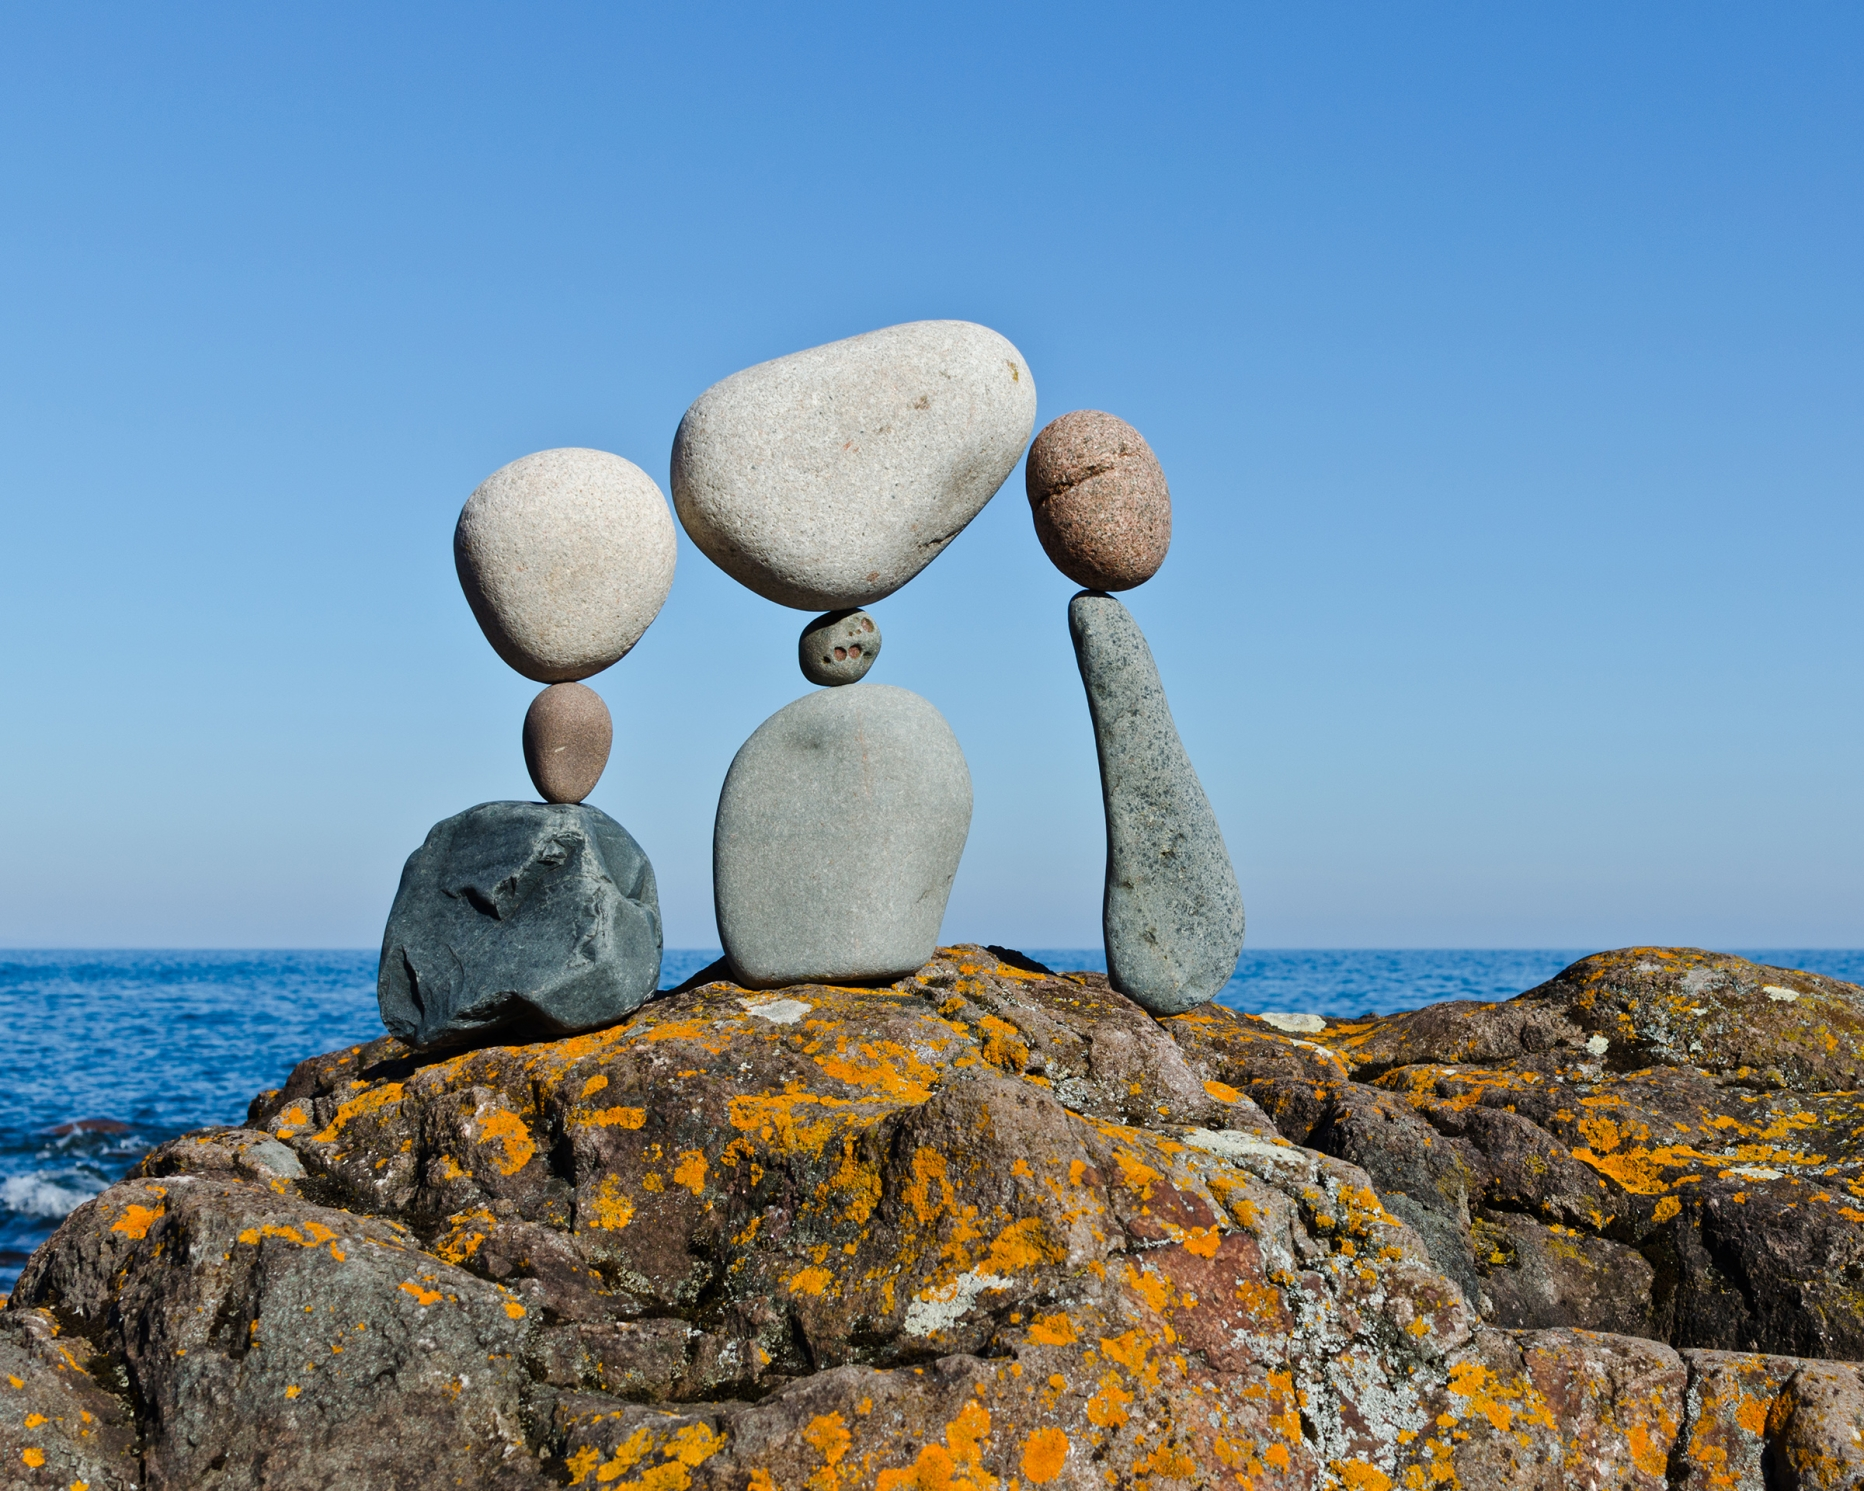 """ We Are Family "" - temprary rock sculpture by Peter Juhl"